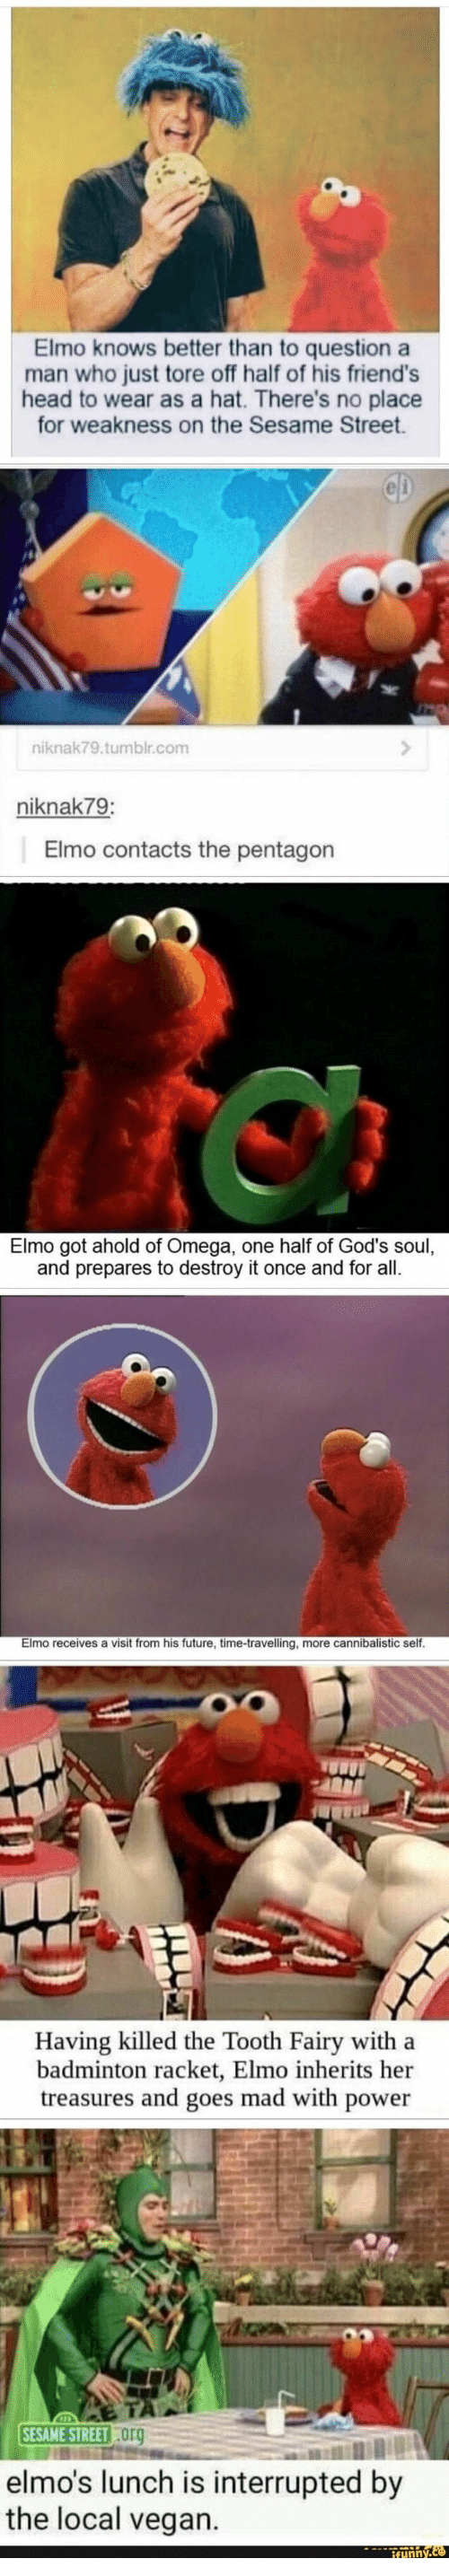 Travelling: Elmo knows better than to question a  man who just tore off half of his friend's  head to wear as a hat. There's no place  for weakness on the Sesame Street  CD  niknak79.tumblr.com  niknak79:  Elmo contacts the pentagon  Elmo got ahold of Omega, one half of God's soul,  and prepares to destroy it once and for all.  Elmo receives a visit from his future, time-travelling, more cannibalistic self.  Having killed the Tooth Fairy with a  badminton racket, Elmo inherits her  treasures and goes mad with power  SESAME STREET Org  elmo's lunch is interrupted by  the local vegan.  ifynny.co